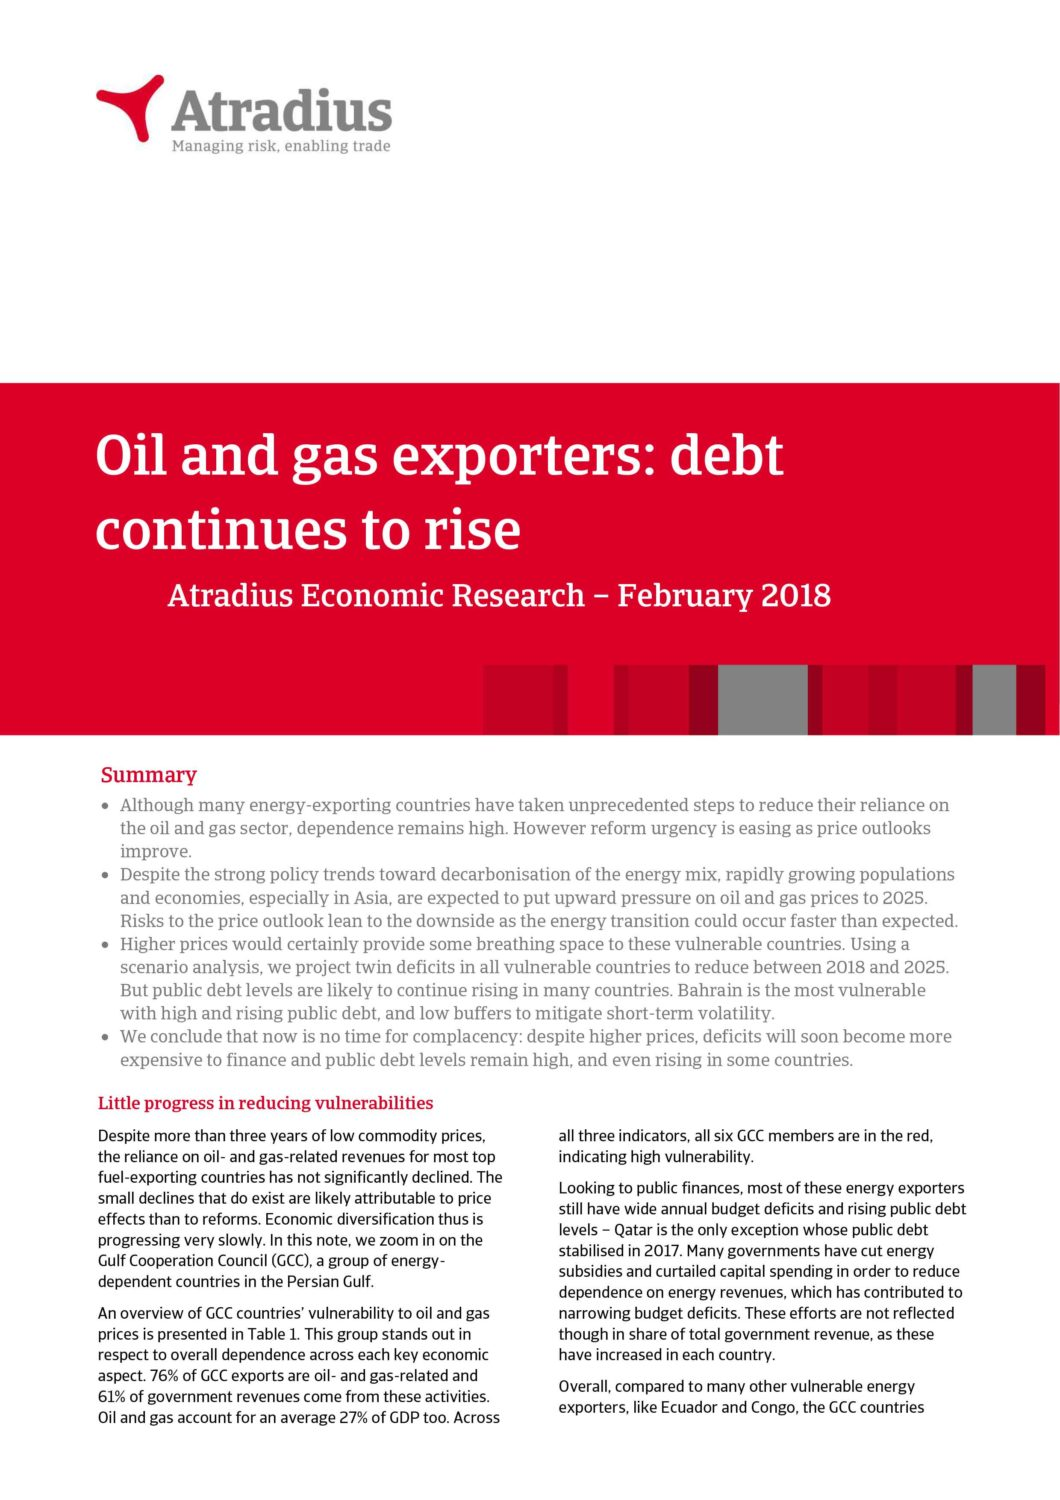 Oil and gas exporters: debt continues to rise